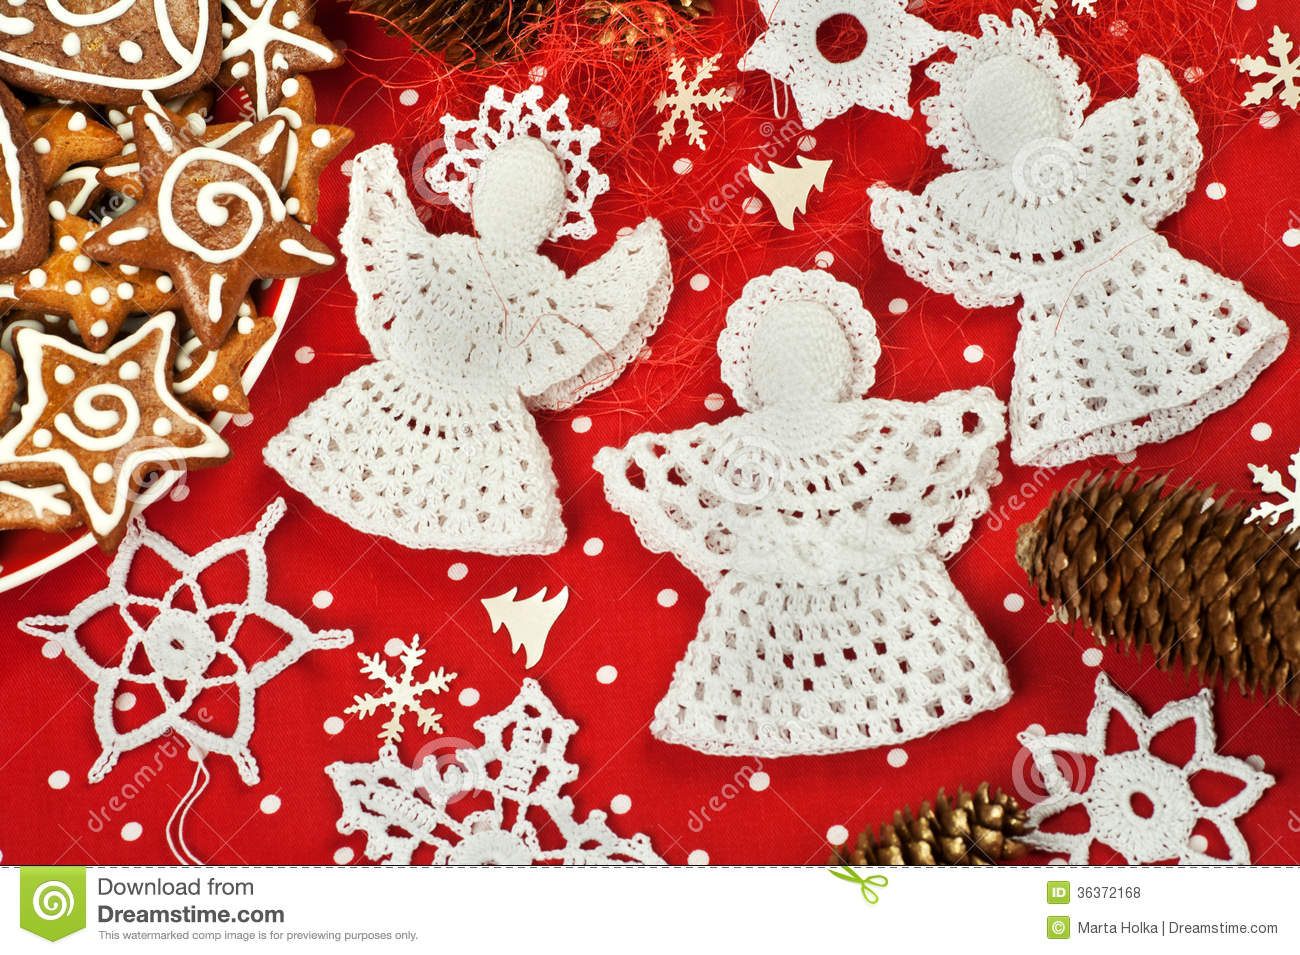 Christmas Crochet Decorations Stock Photo Image 36372168